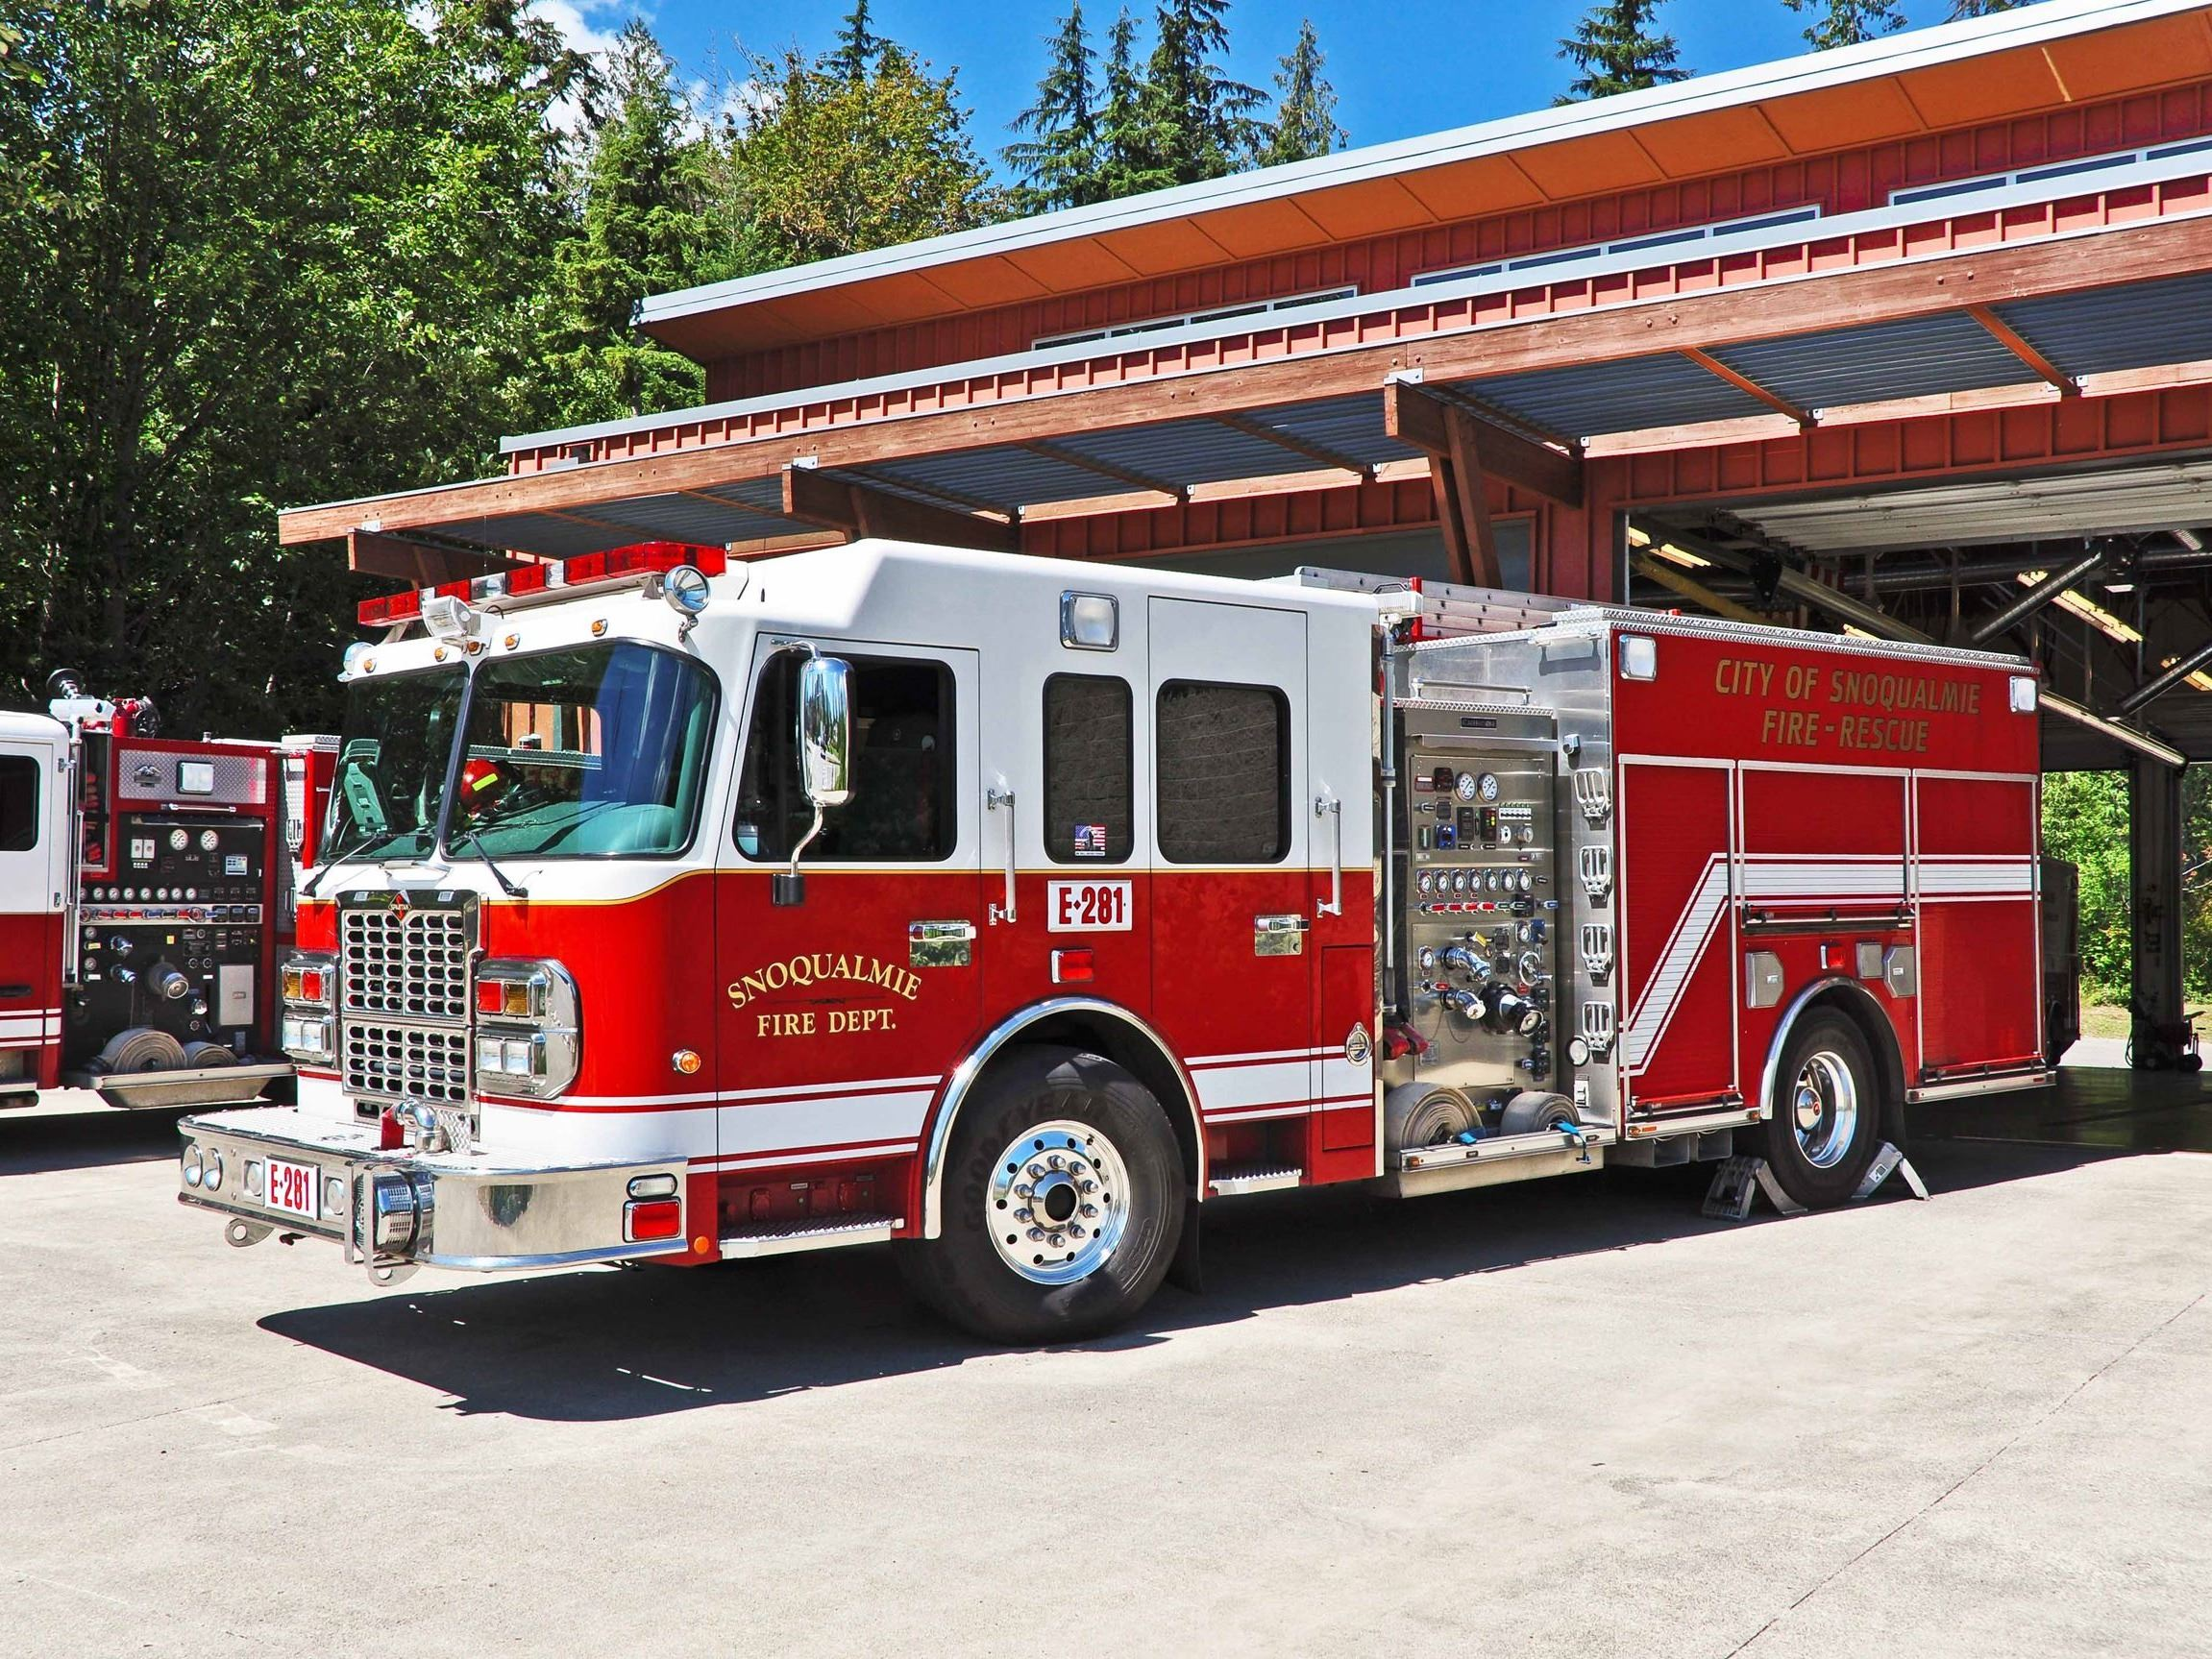 This is a photo of a Snoqualmie Fire Department Fire Truck.